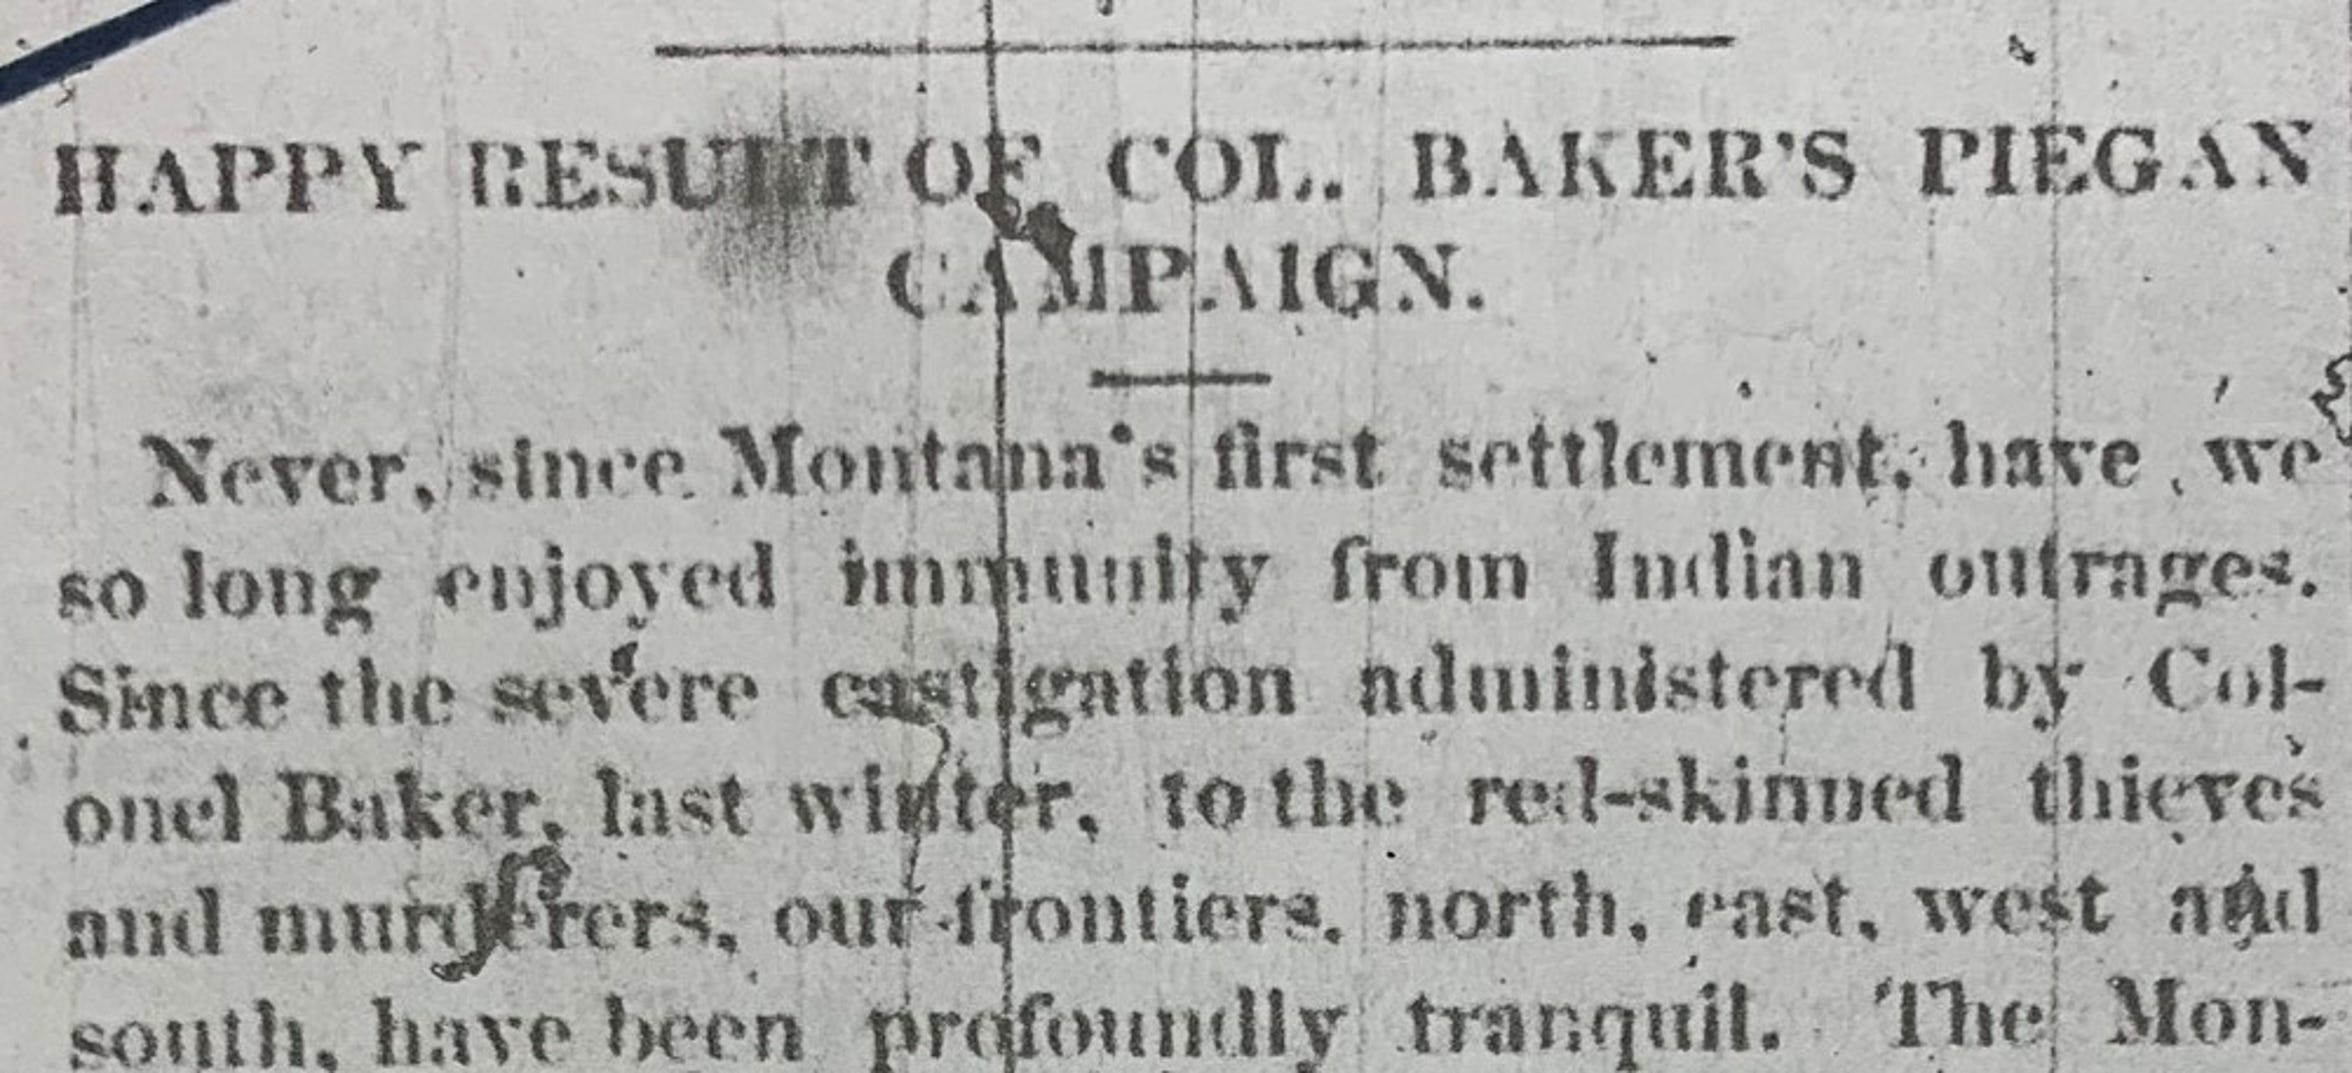 "Nearly six months after the massacre, the Montana Pick and Plow, a Bozeman newspaper, ran a story titled, ""Happy result of Col. Baker's Piegan Campaign."""